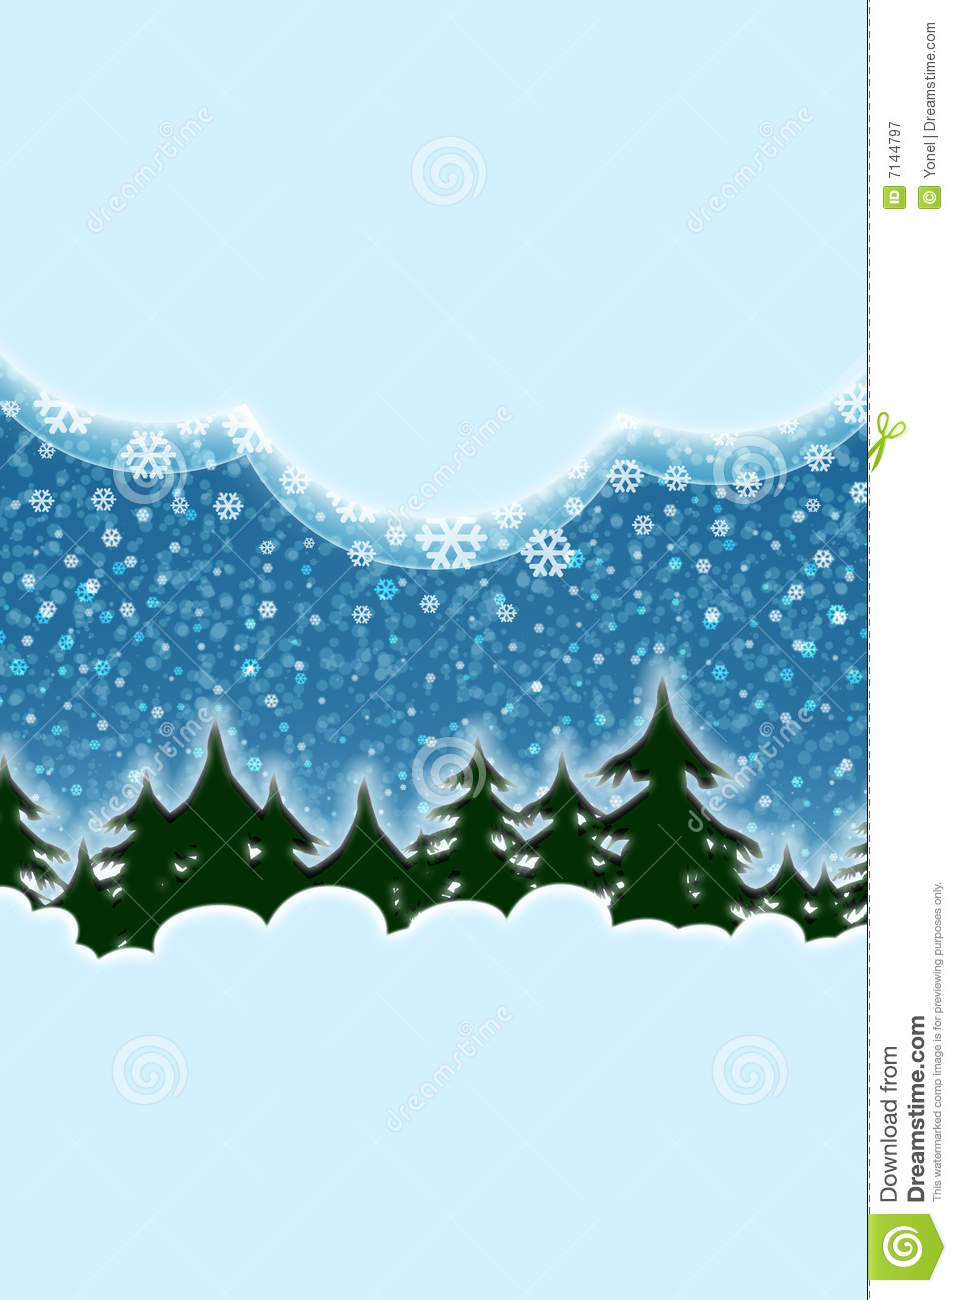 Winter Snowing Christmas Scenery Royalty Free Stock